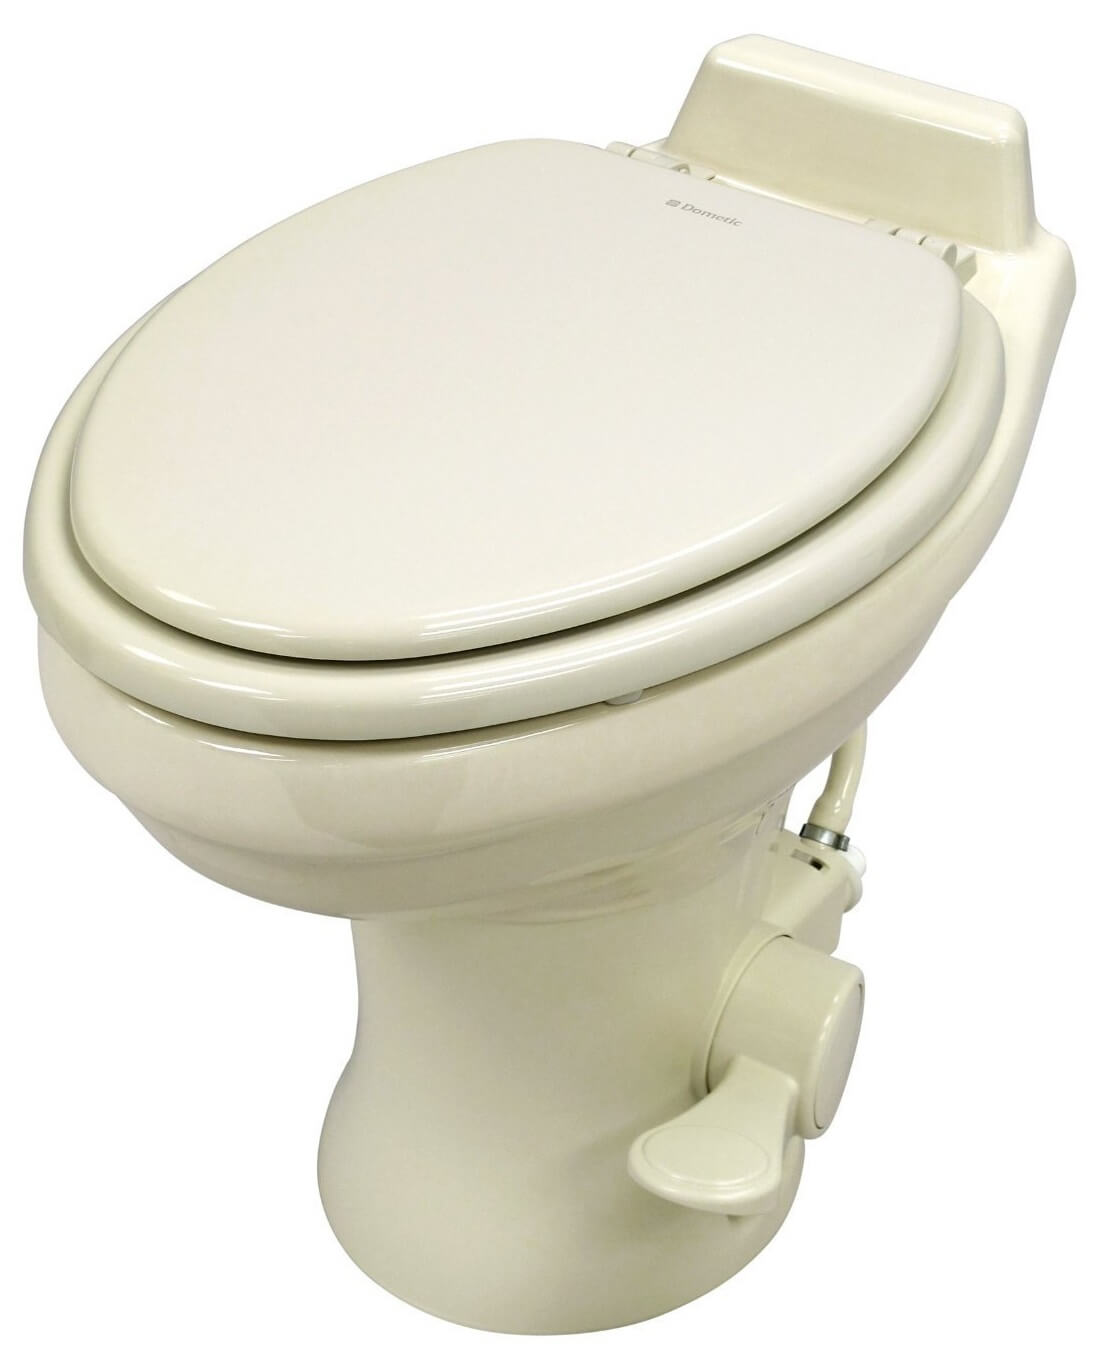 Best toilet on the market reviews - Dometic 320 Series Standard Height Toilet Whand Spray Bone